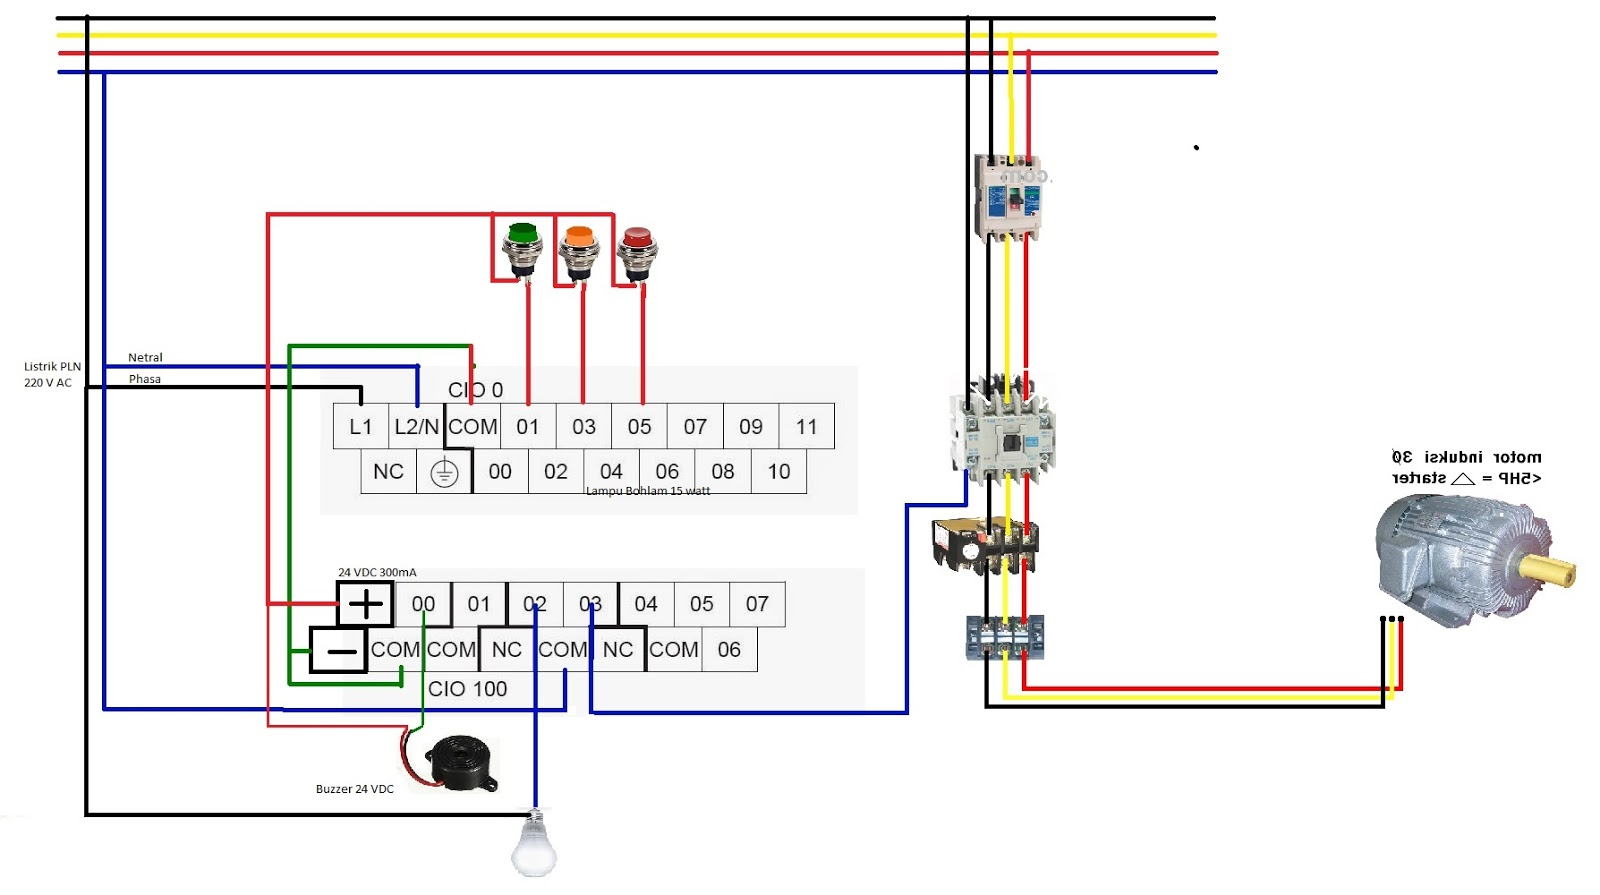 Wiring Diagram Plc Panel Ps2 To Usb Cable A Great Installation Of Omron Cp1e Schematics Rh Ksefanzone Com Cabinet Systems